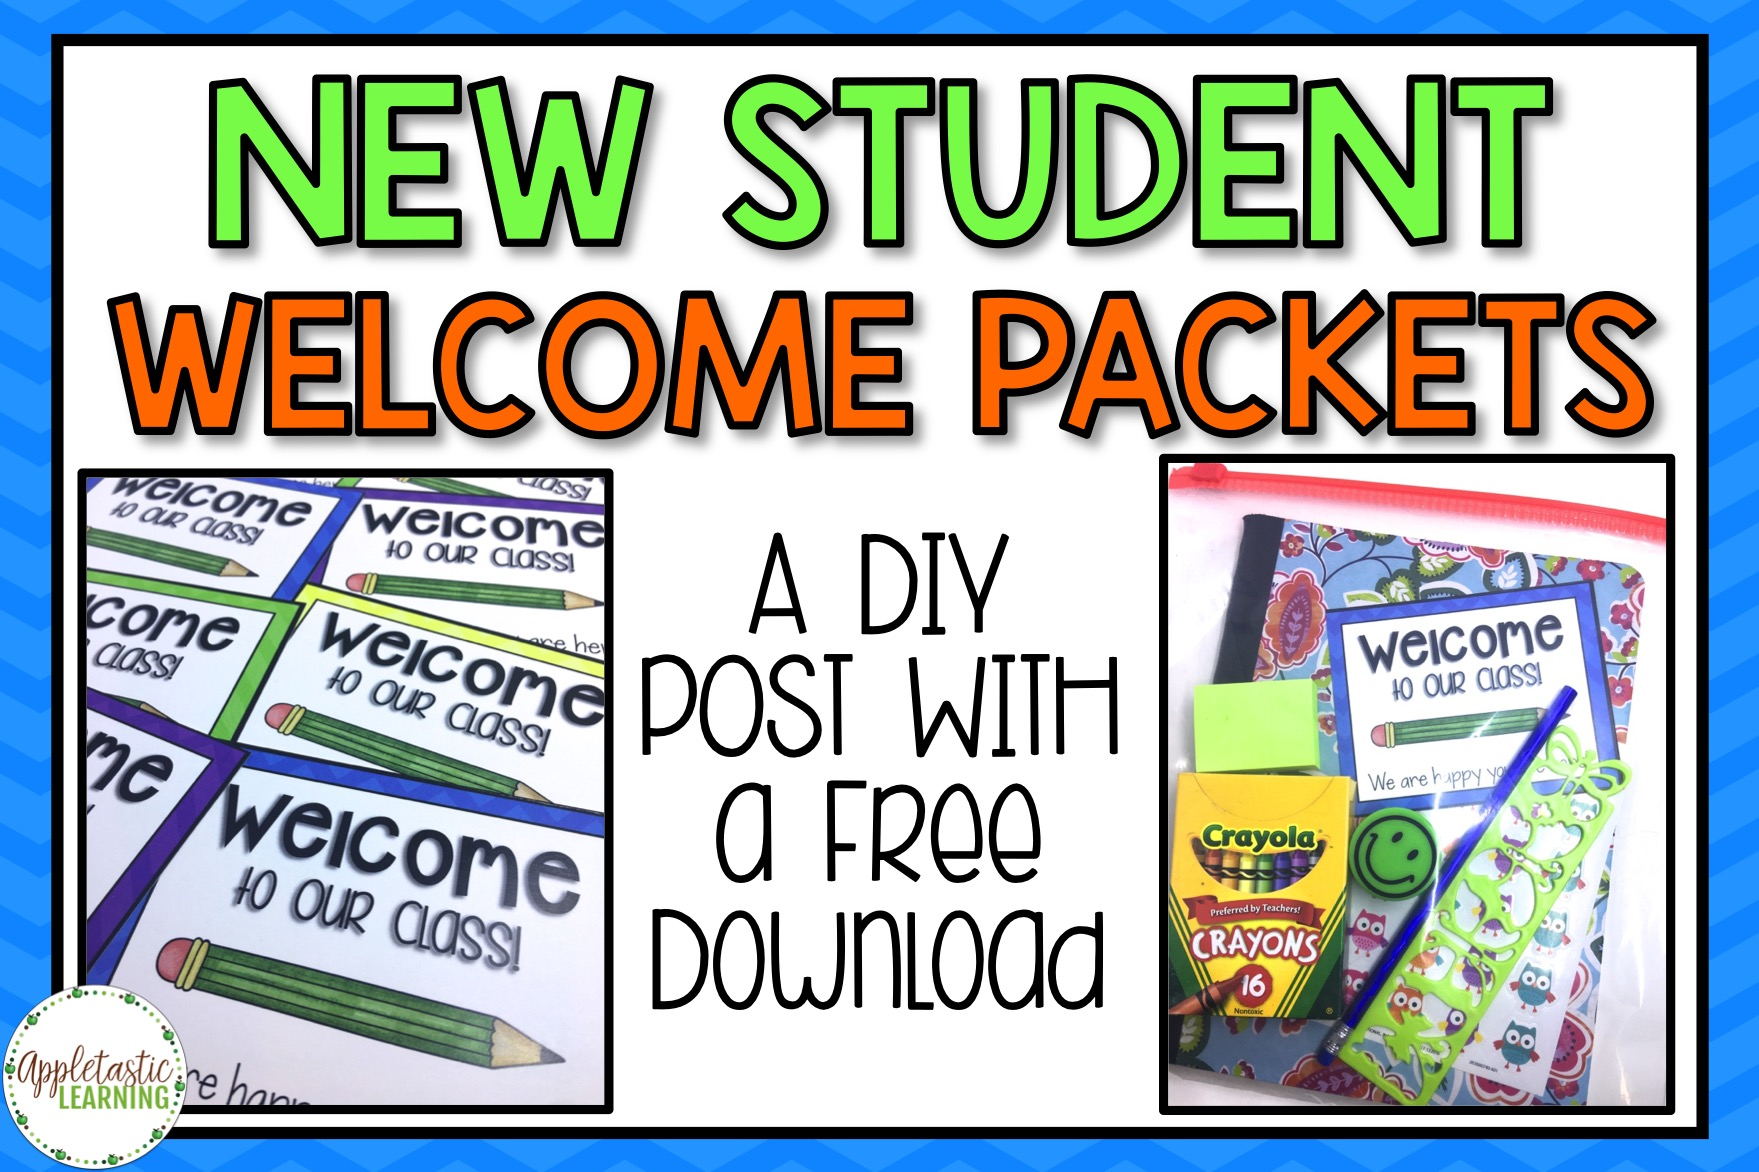 Free Diy New Student Welcome Packets